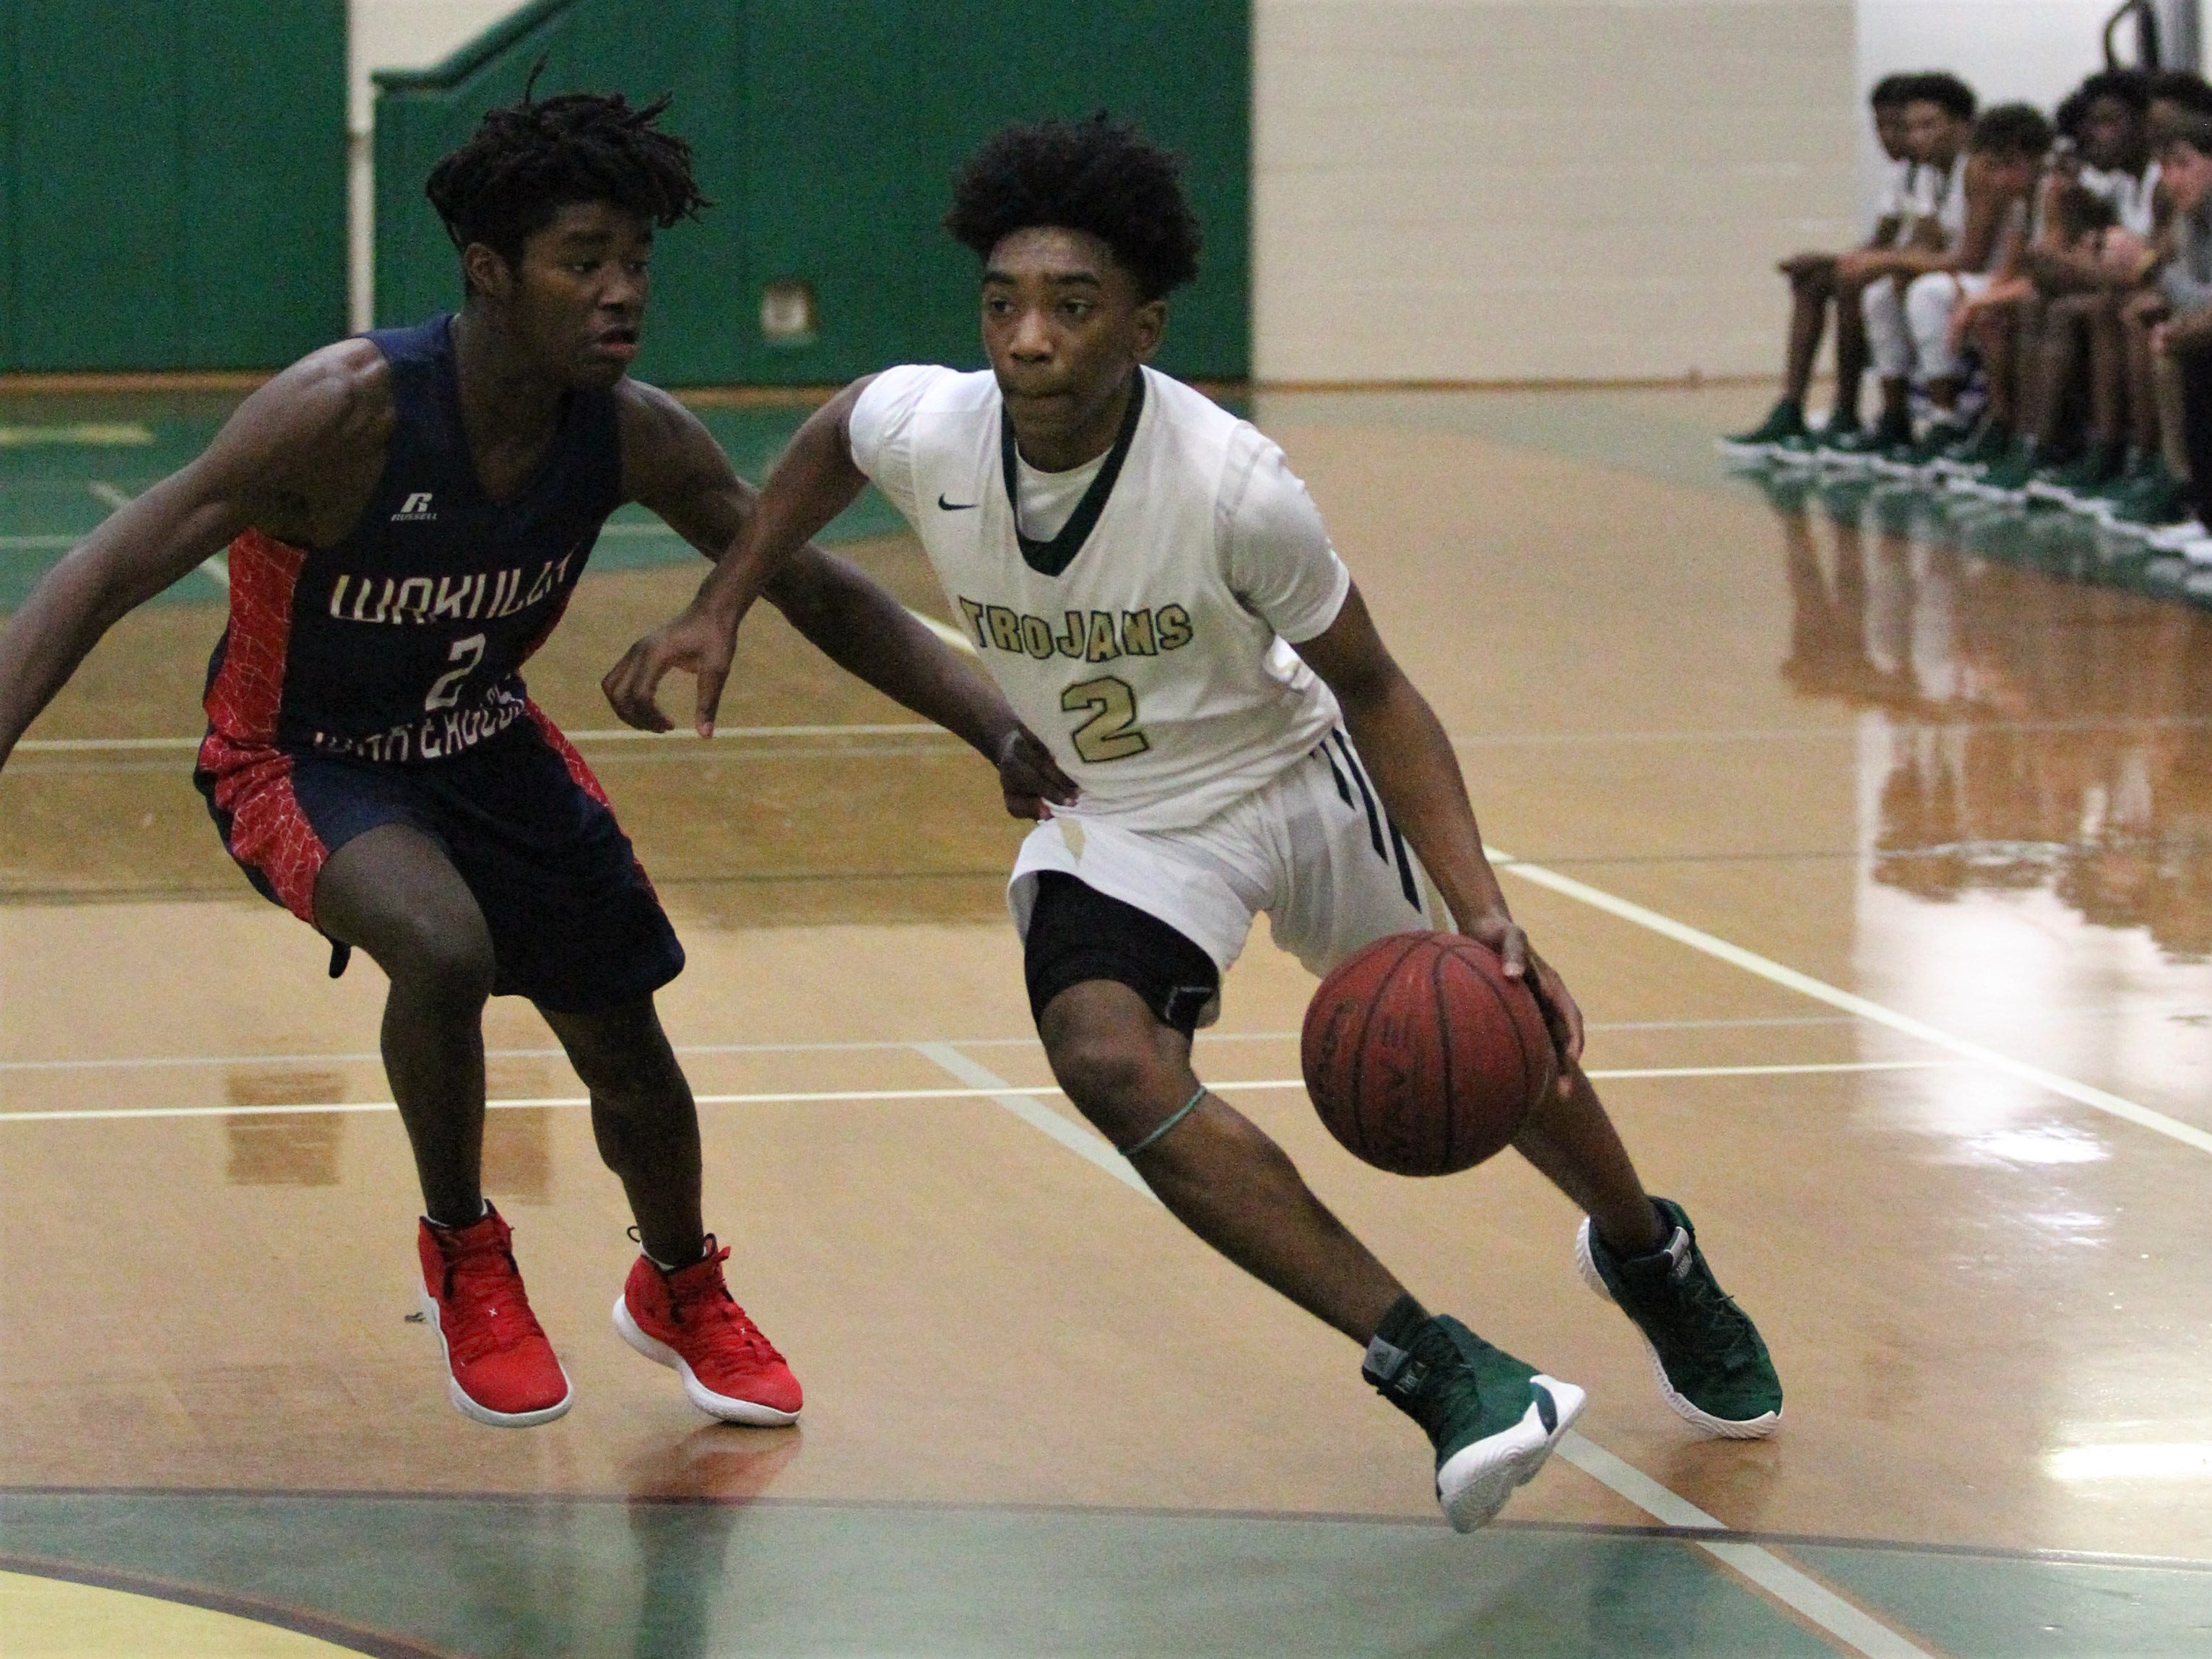 Lincoln's Zae Wiggins drives to the basket during a home game against Wakulla  on Jan. 10, 2019.